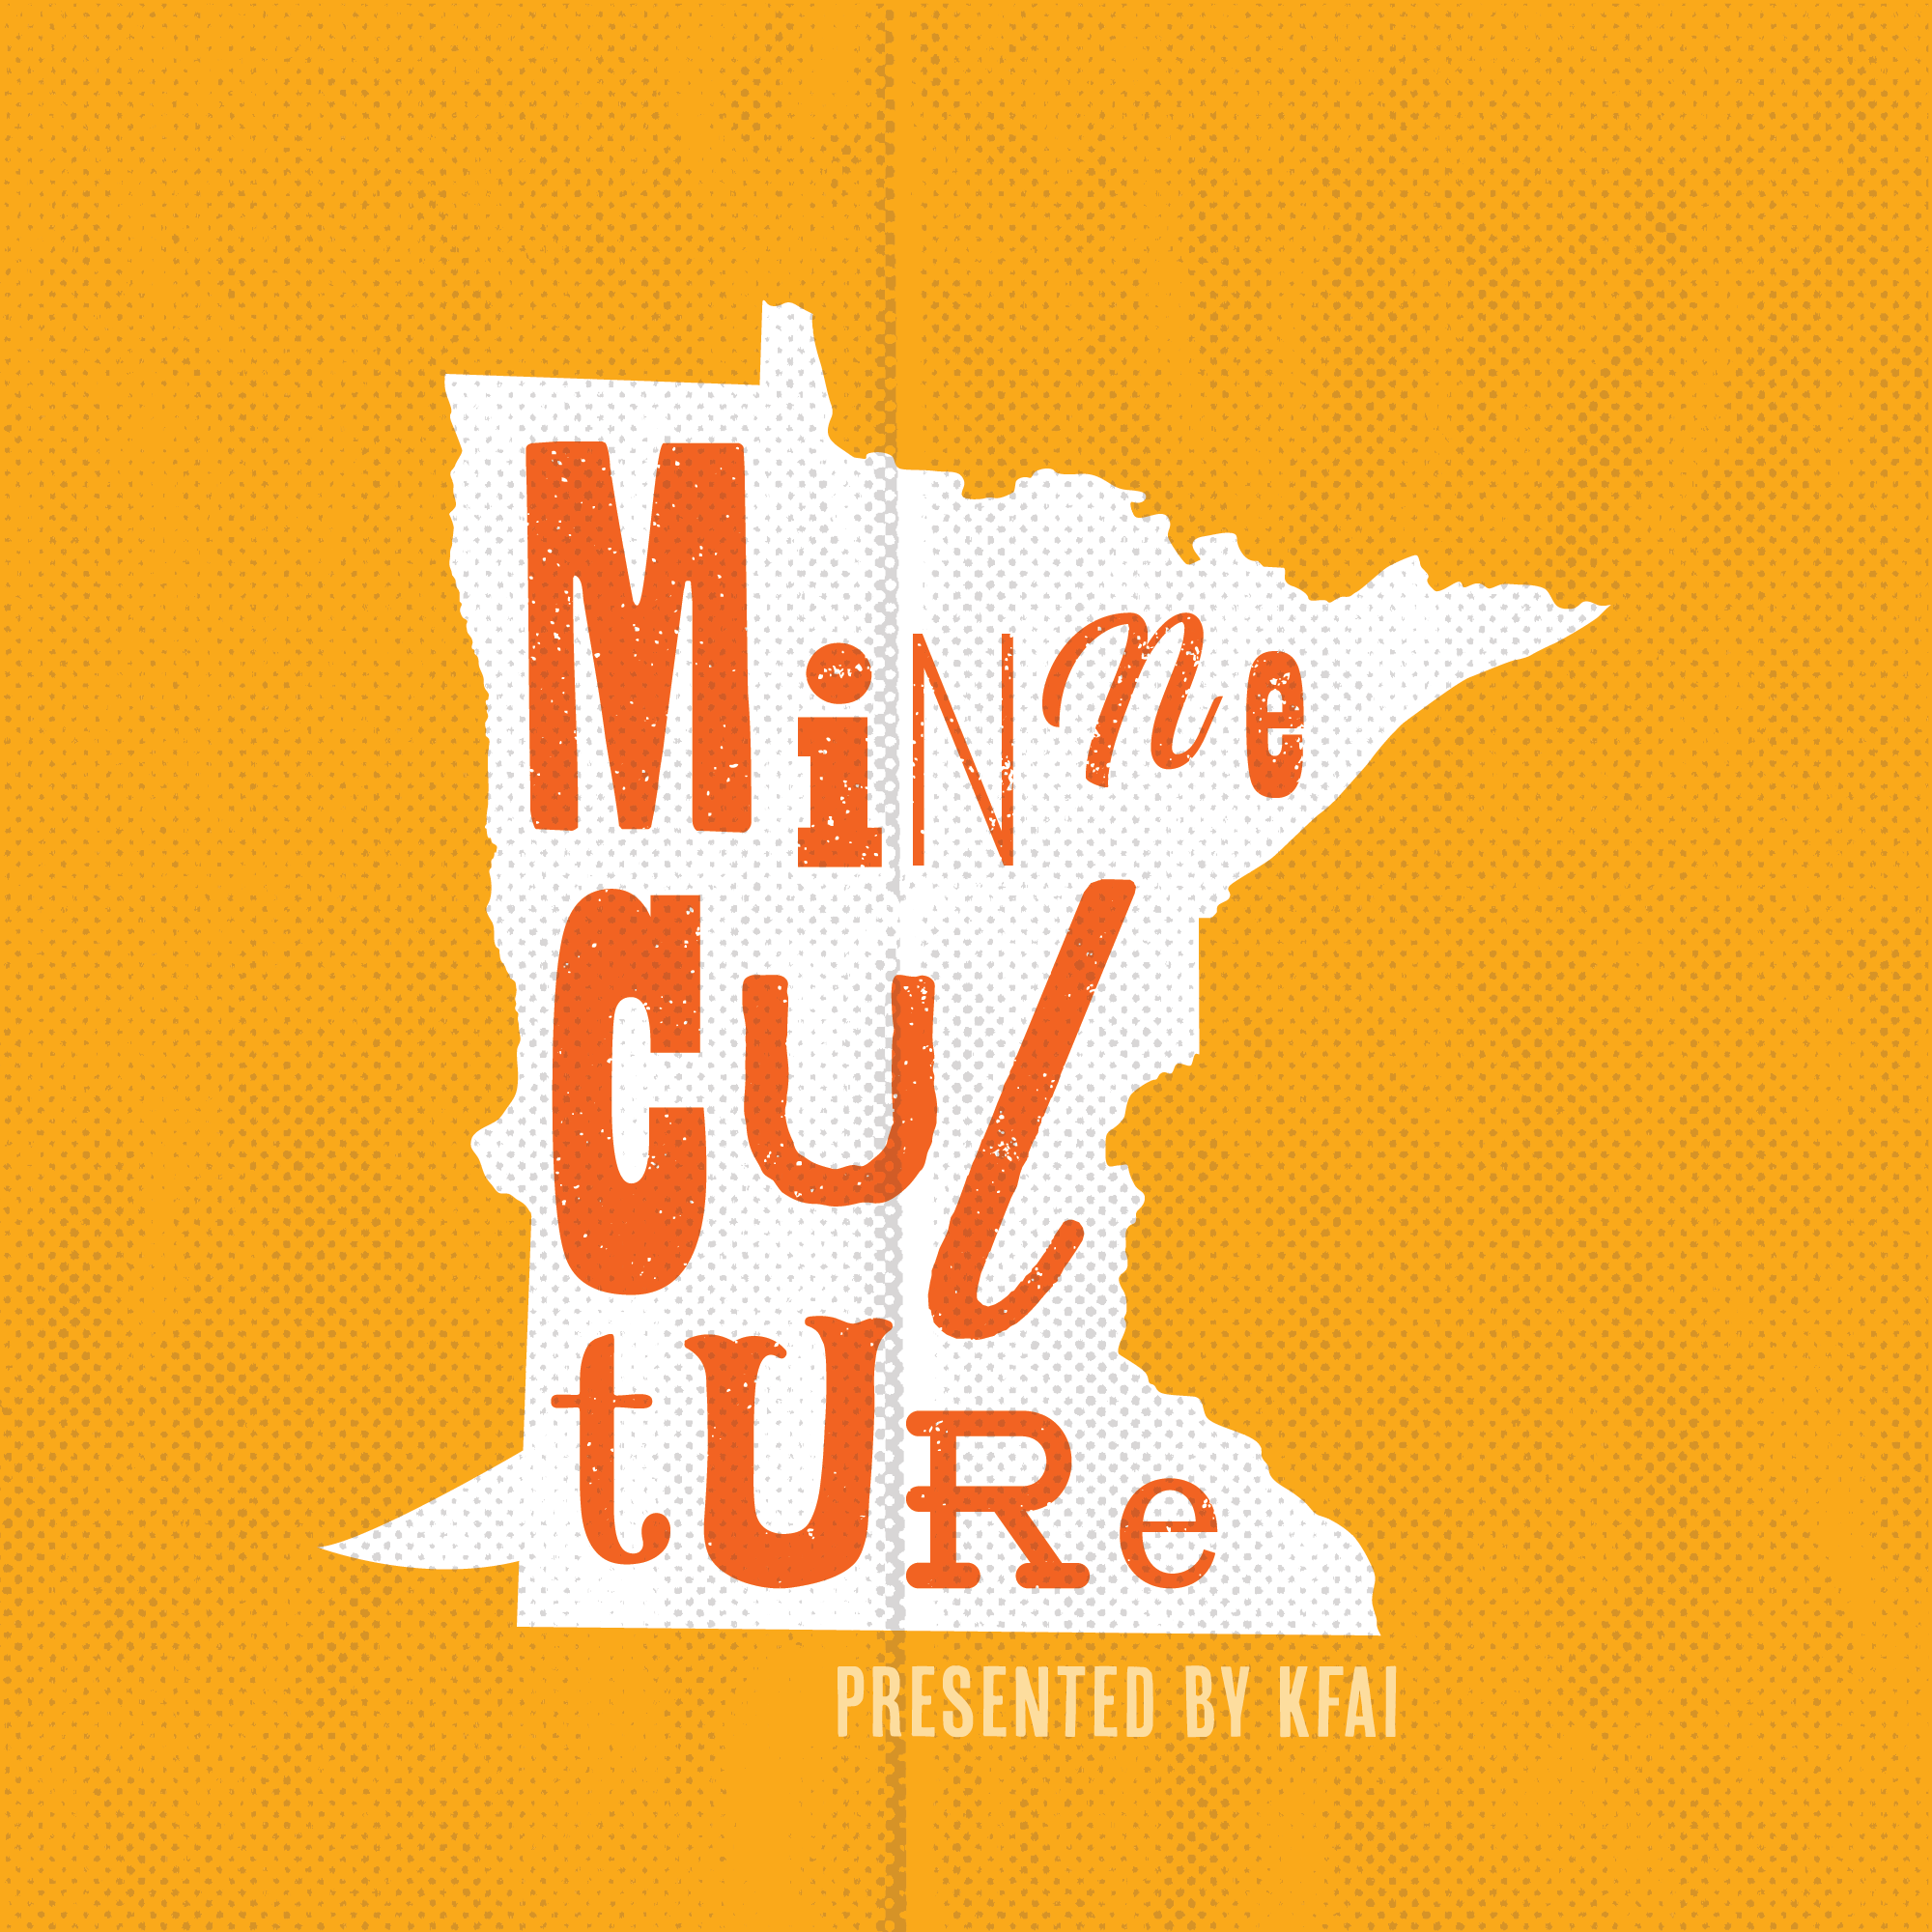 prx series minneculture podcast